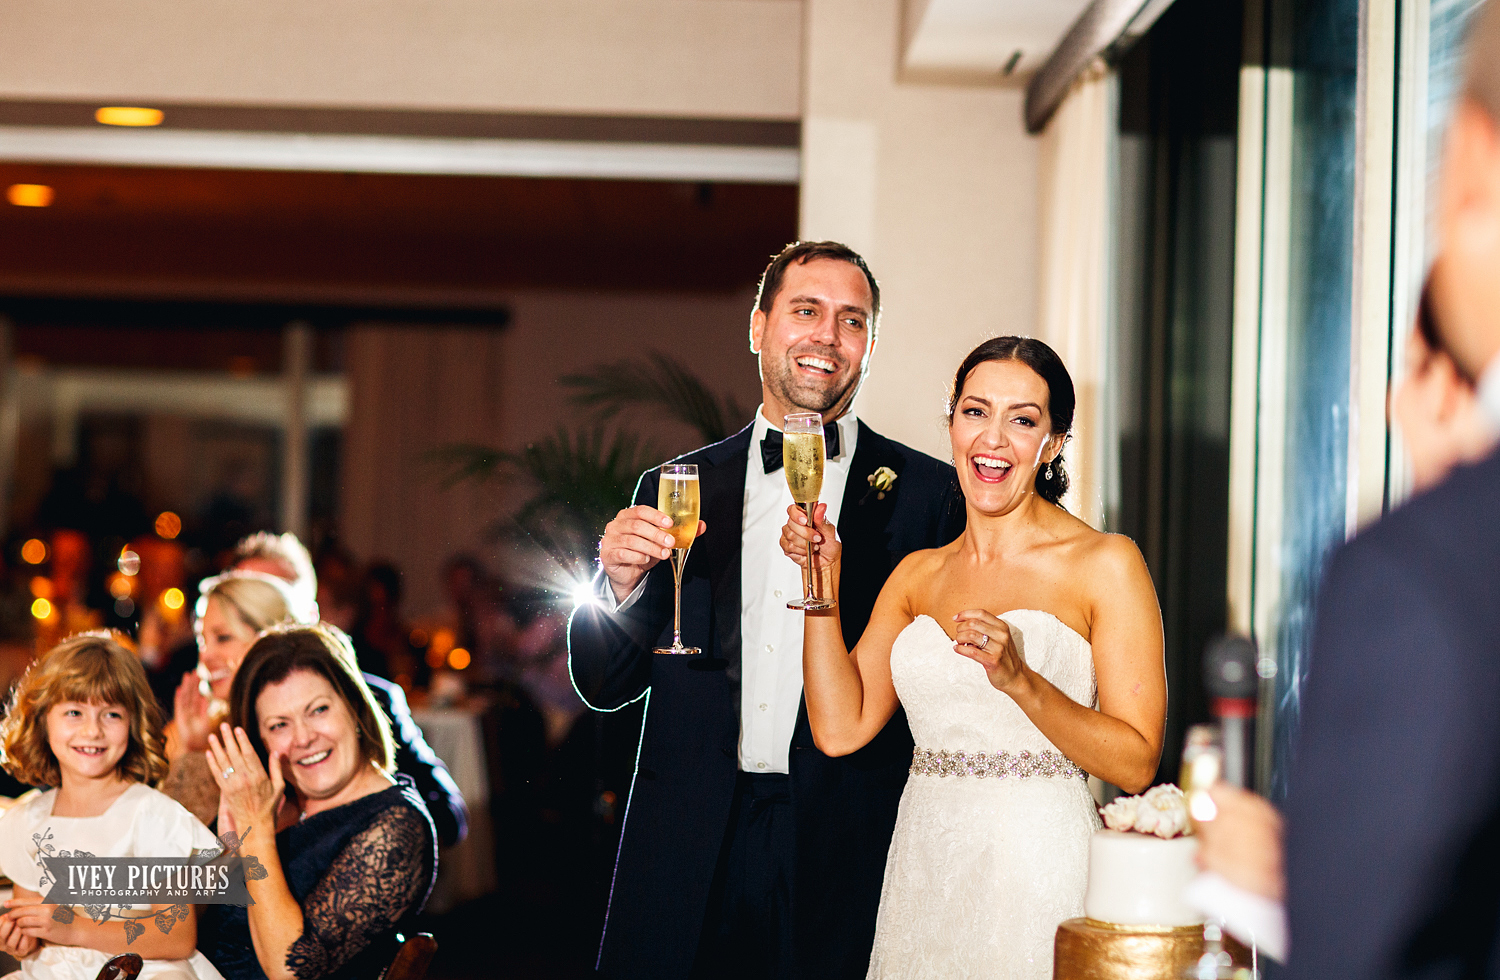 best man's toast to bride and groom